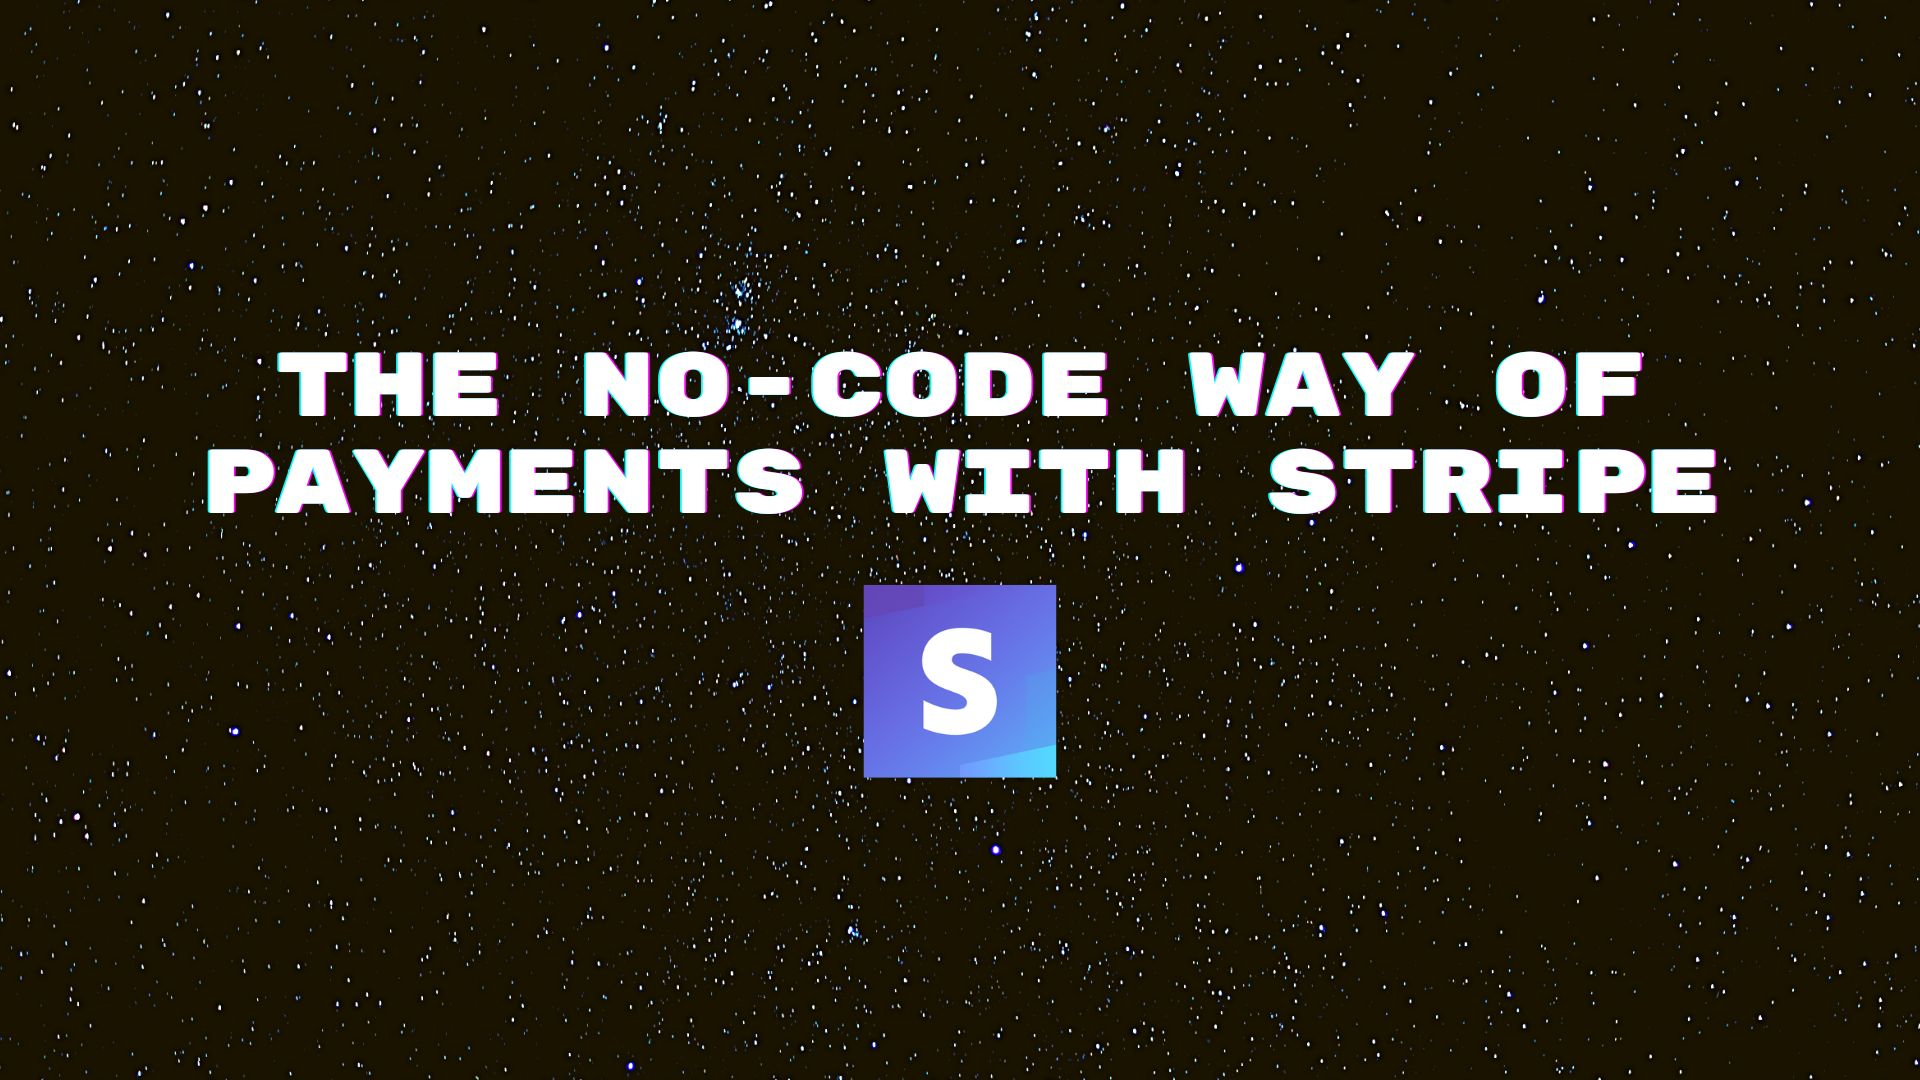 /the-no-code-way-of-payments-with-stripe-a-brief-guide-sw1z37v1 feature image